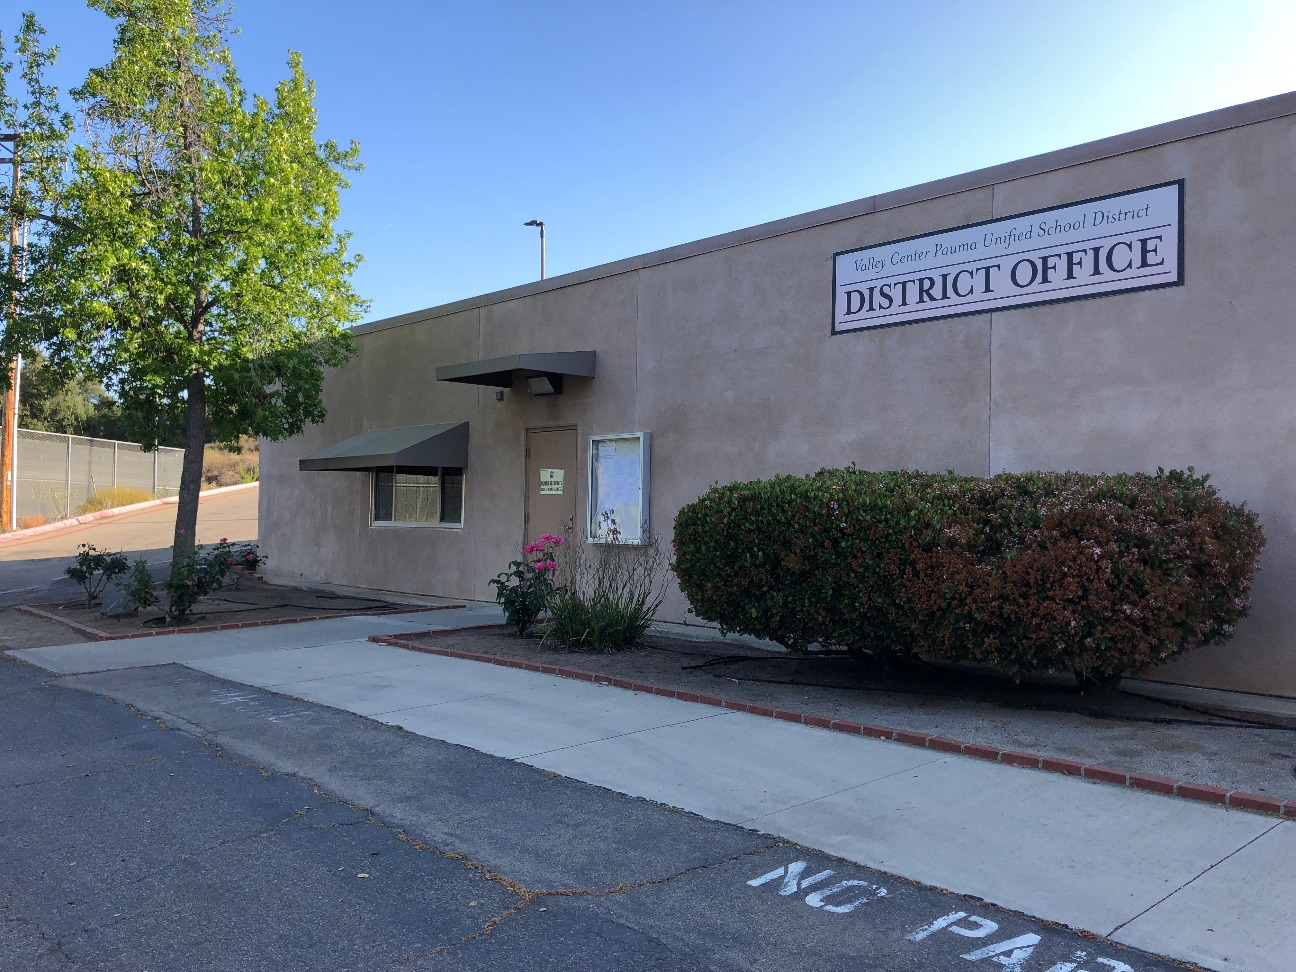 Photo of VCPUSD District Office Exterior